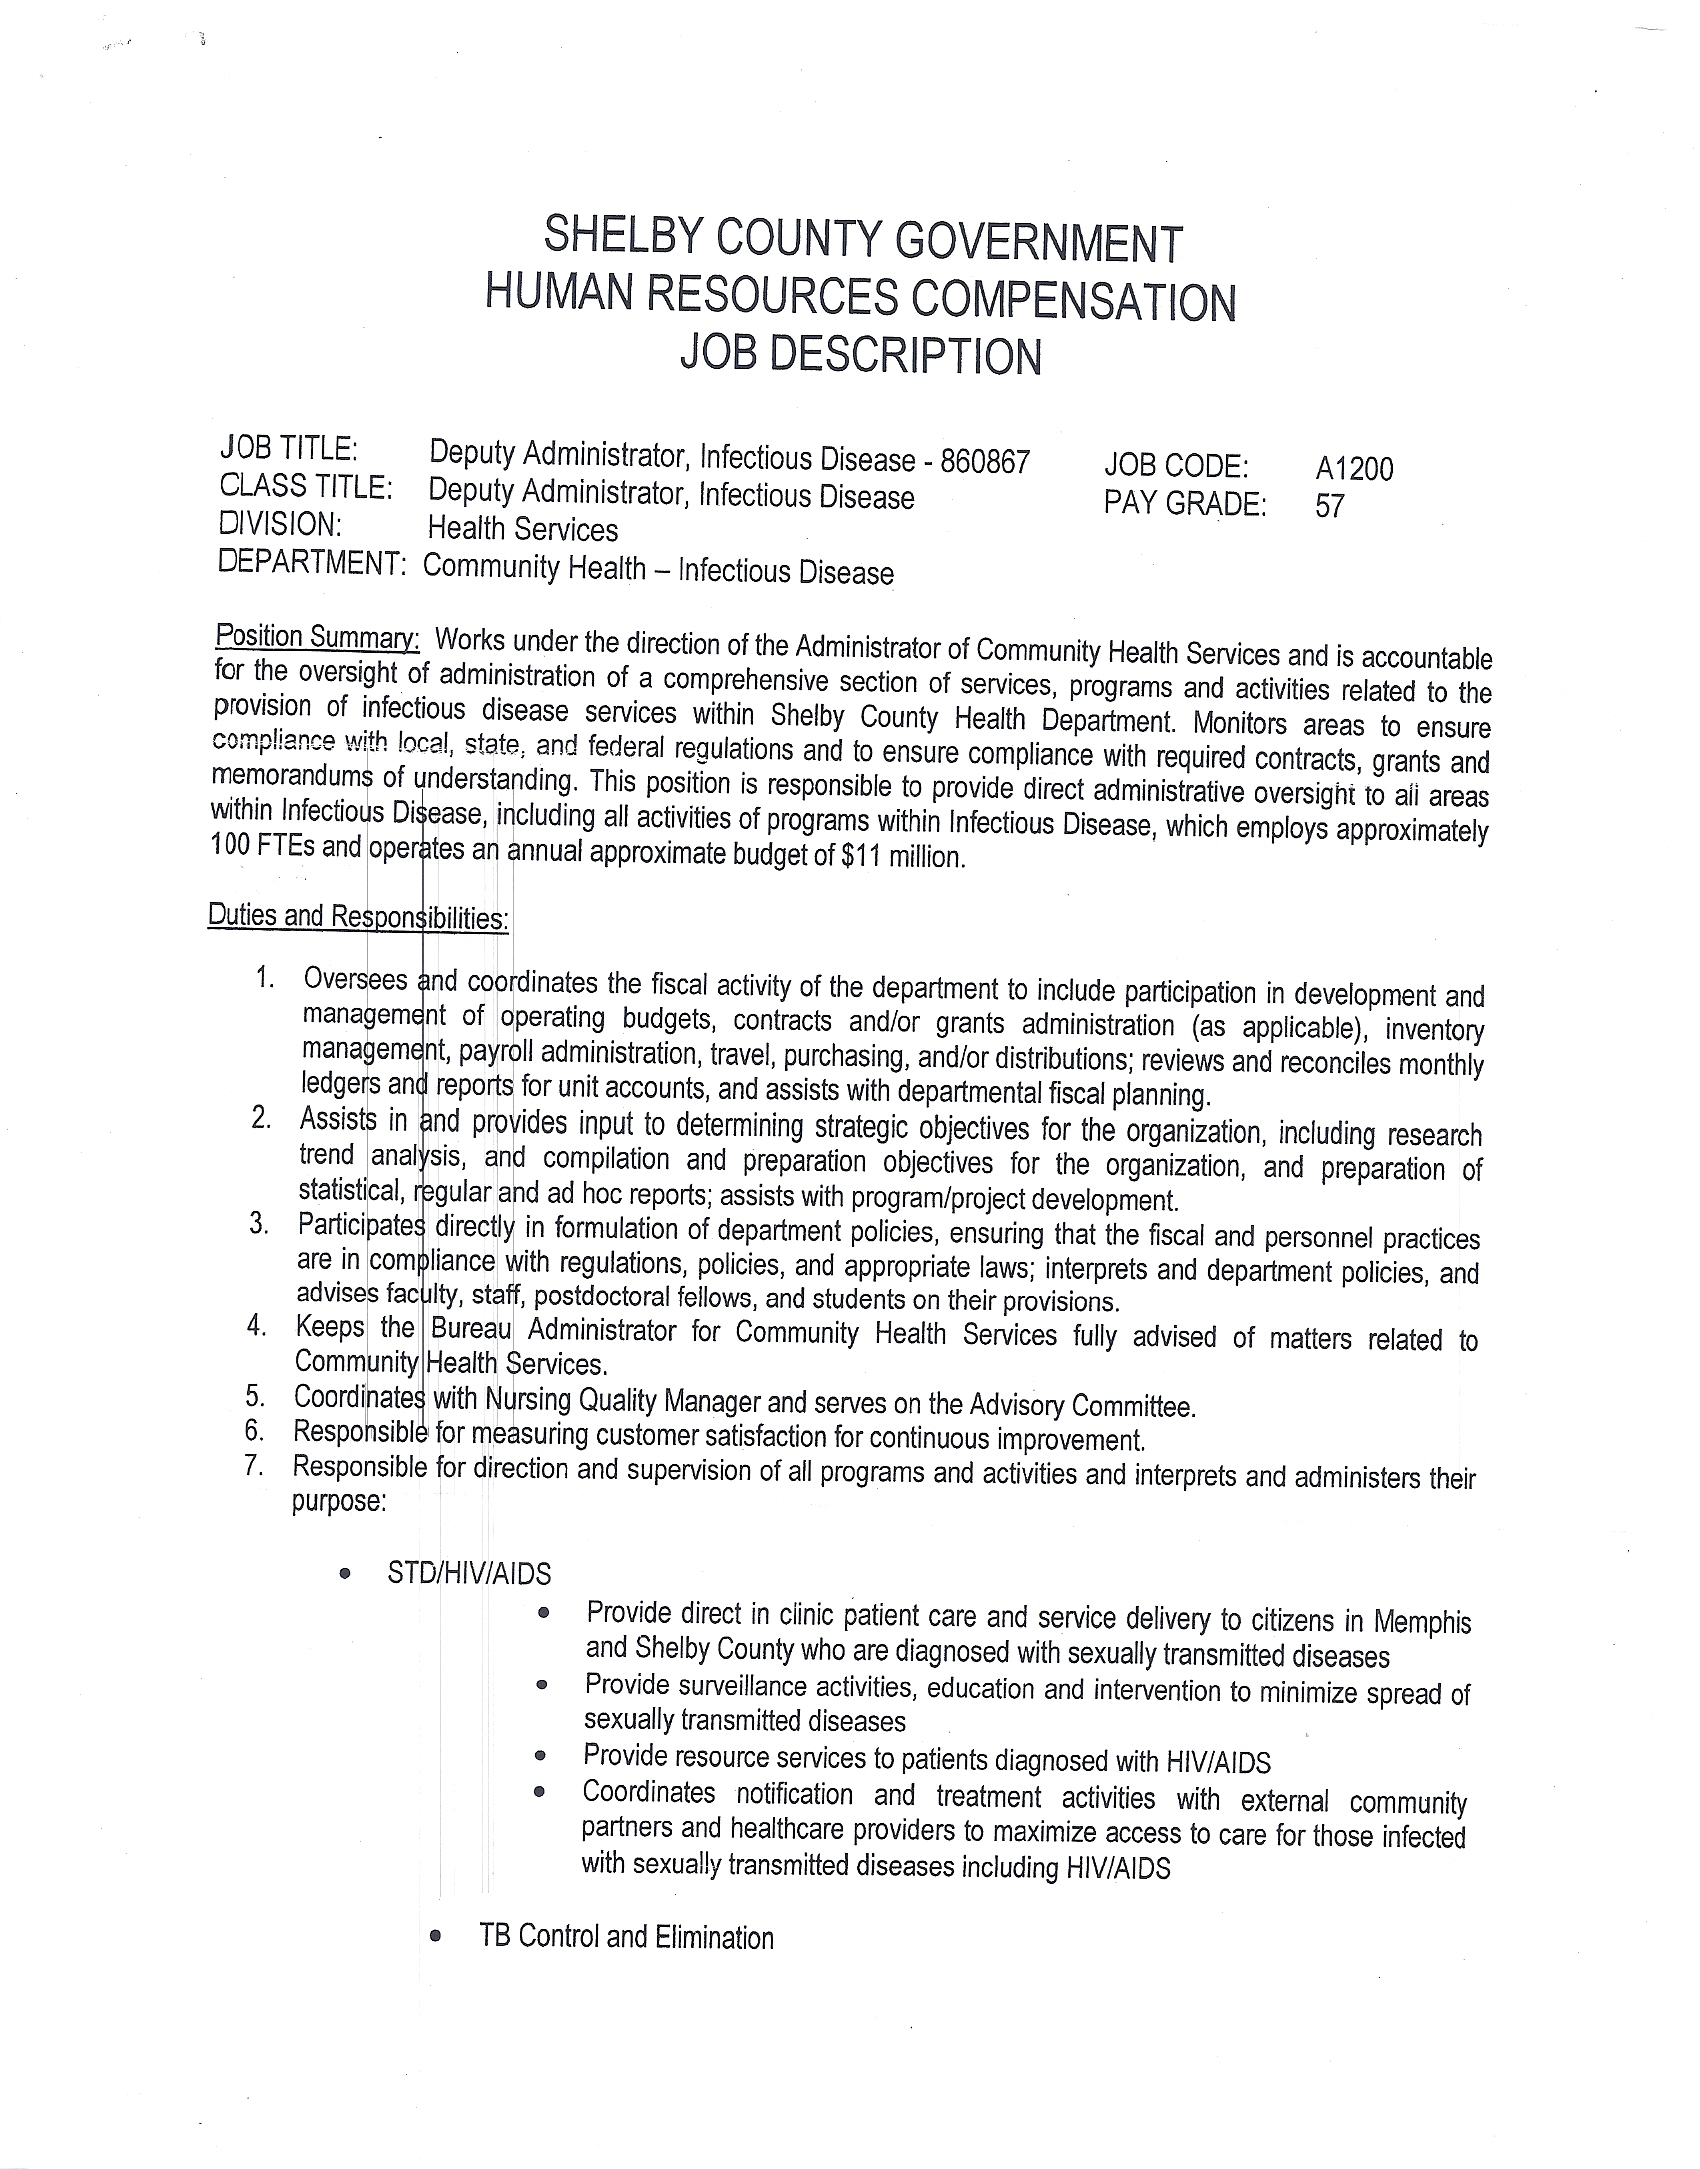 how to send cover letter and resume in mail